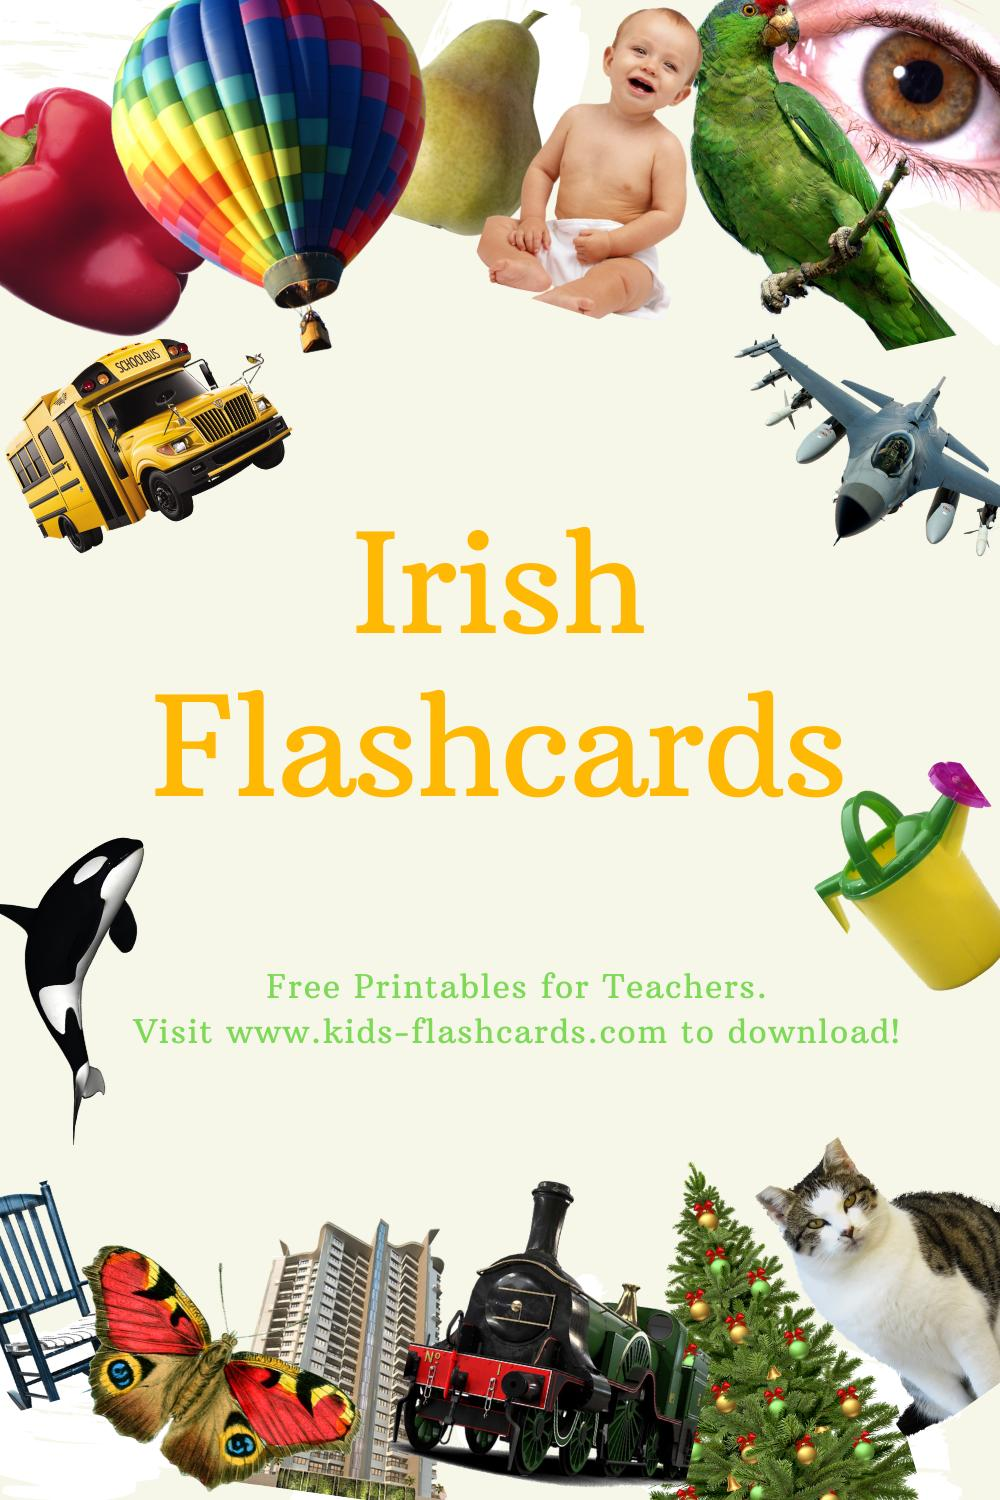 Worksheets to learn Irish language